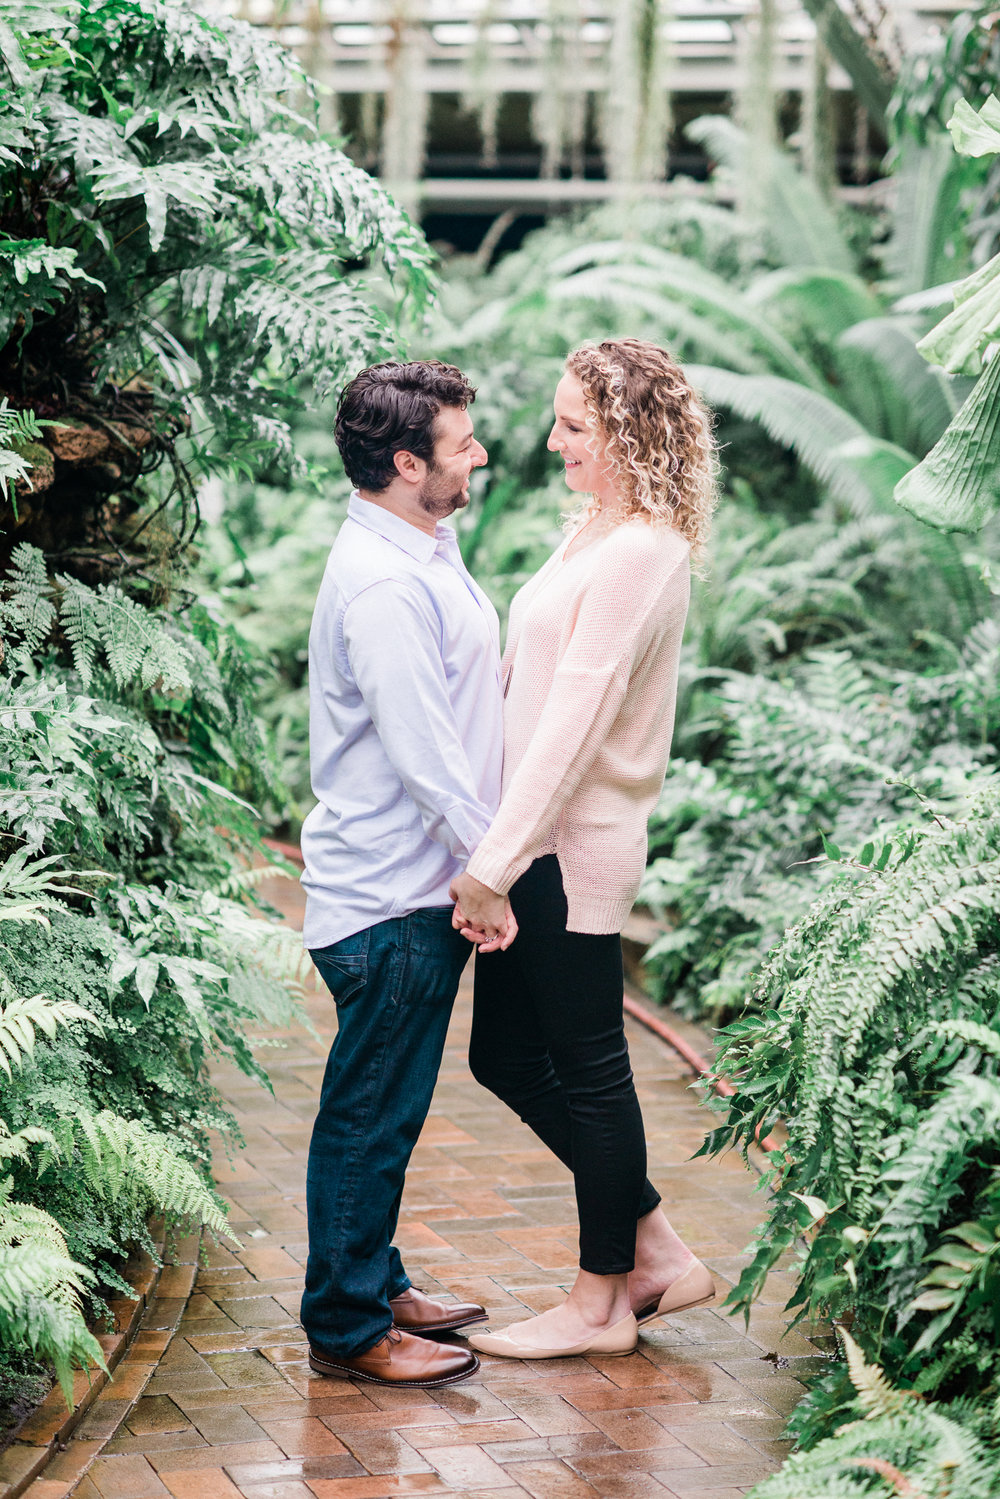 Brittany Bekas - Garfield Park Conservatory Chicago Engagement Photos-2.jpg